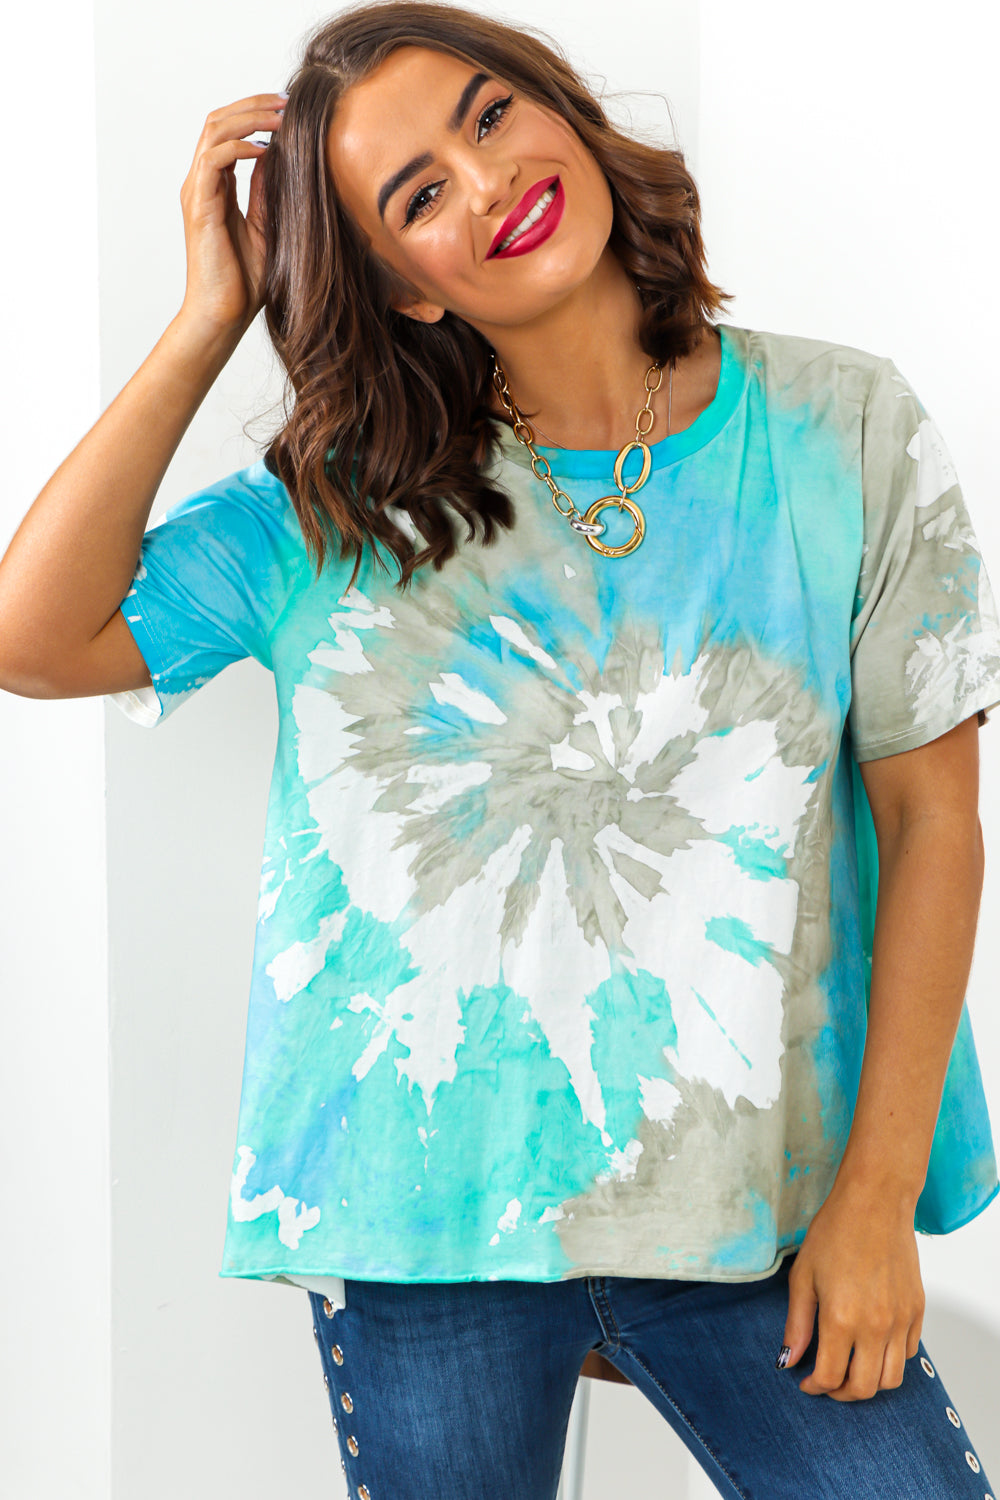 Blue Green Tie Dye T-Shirt DLSB Womens Fashion